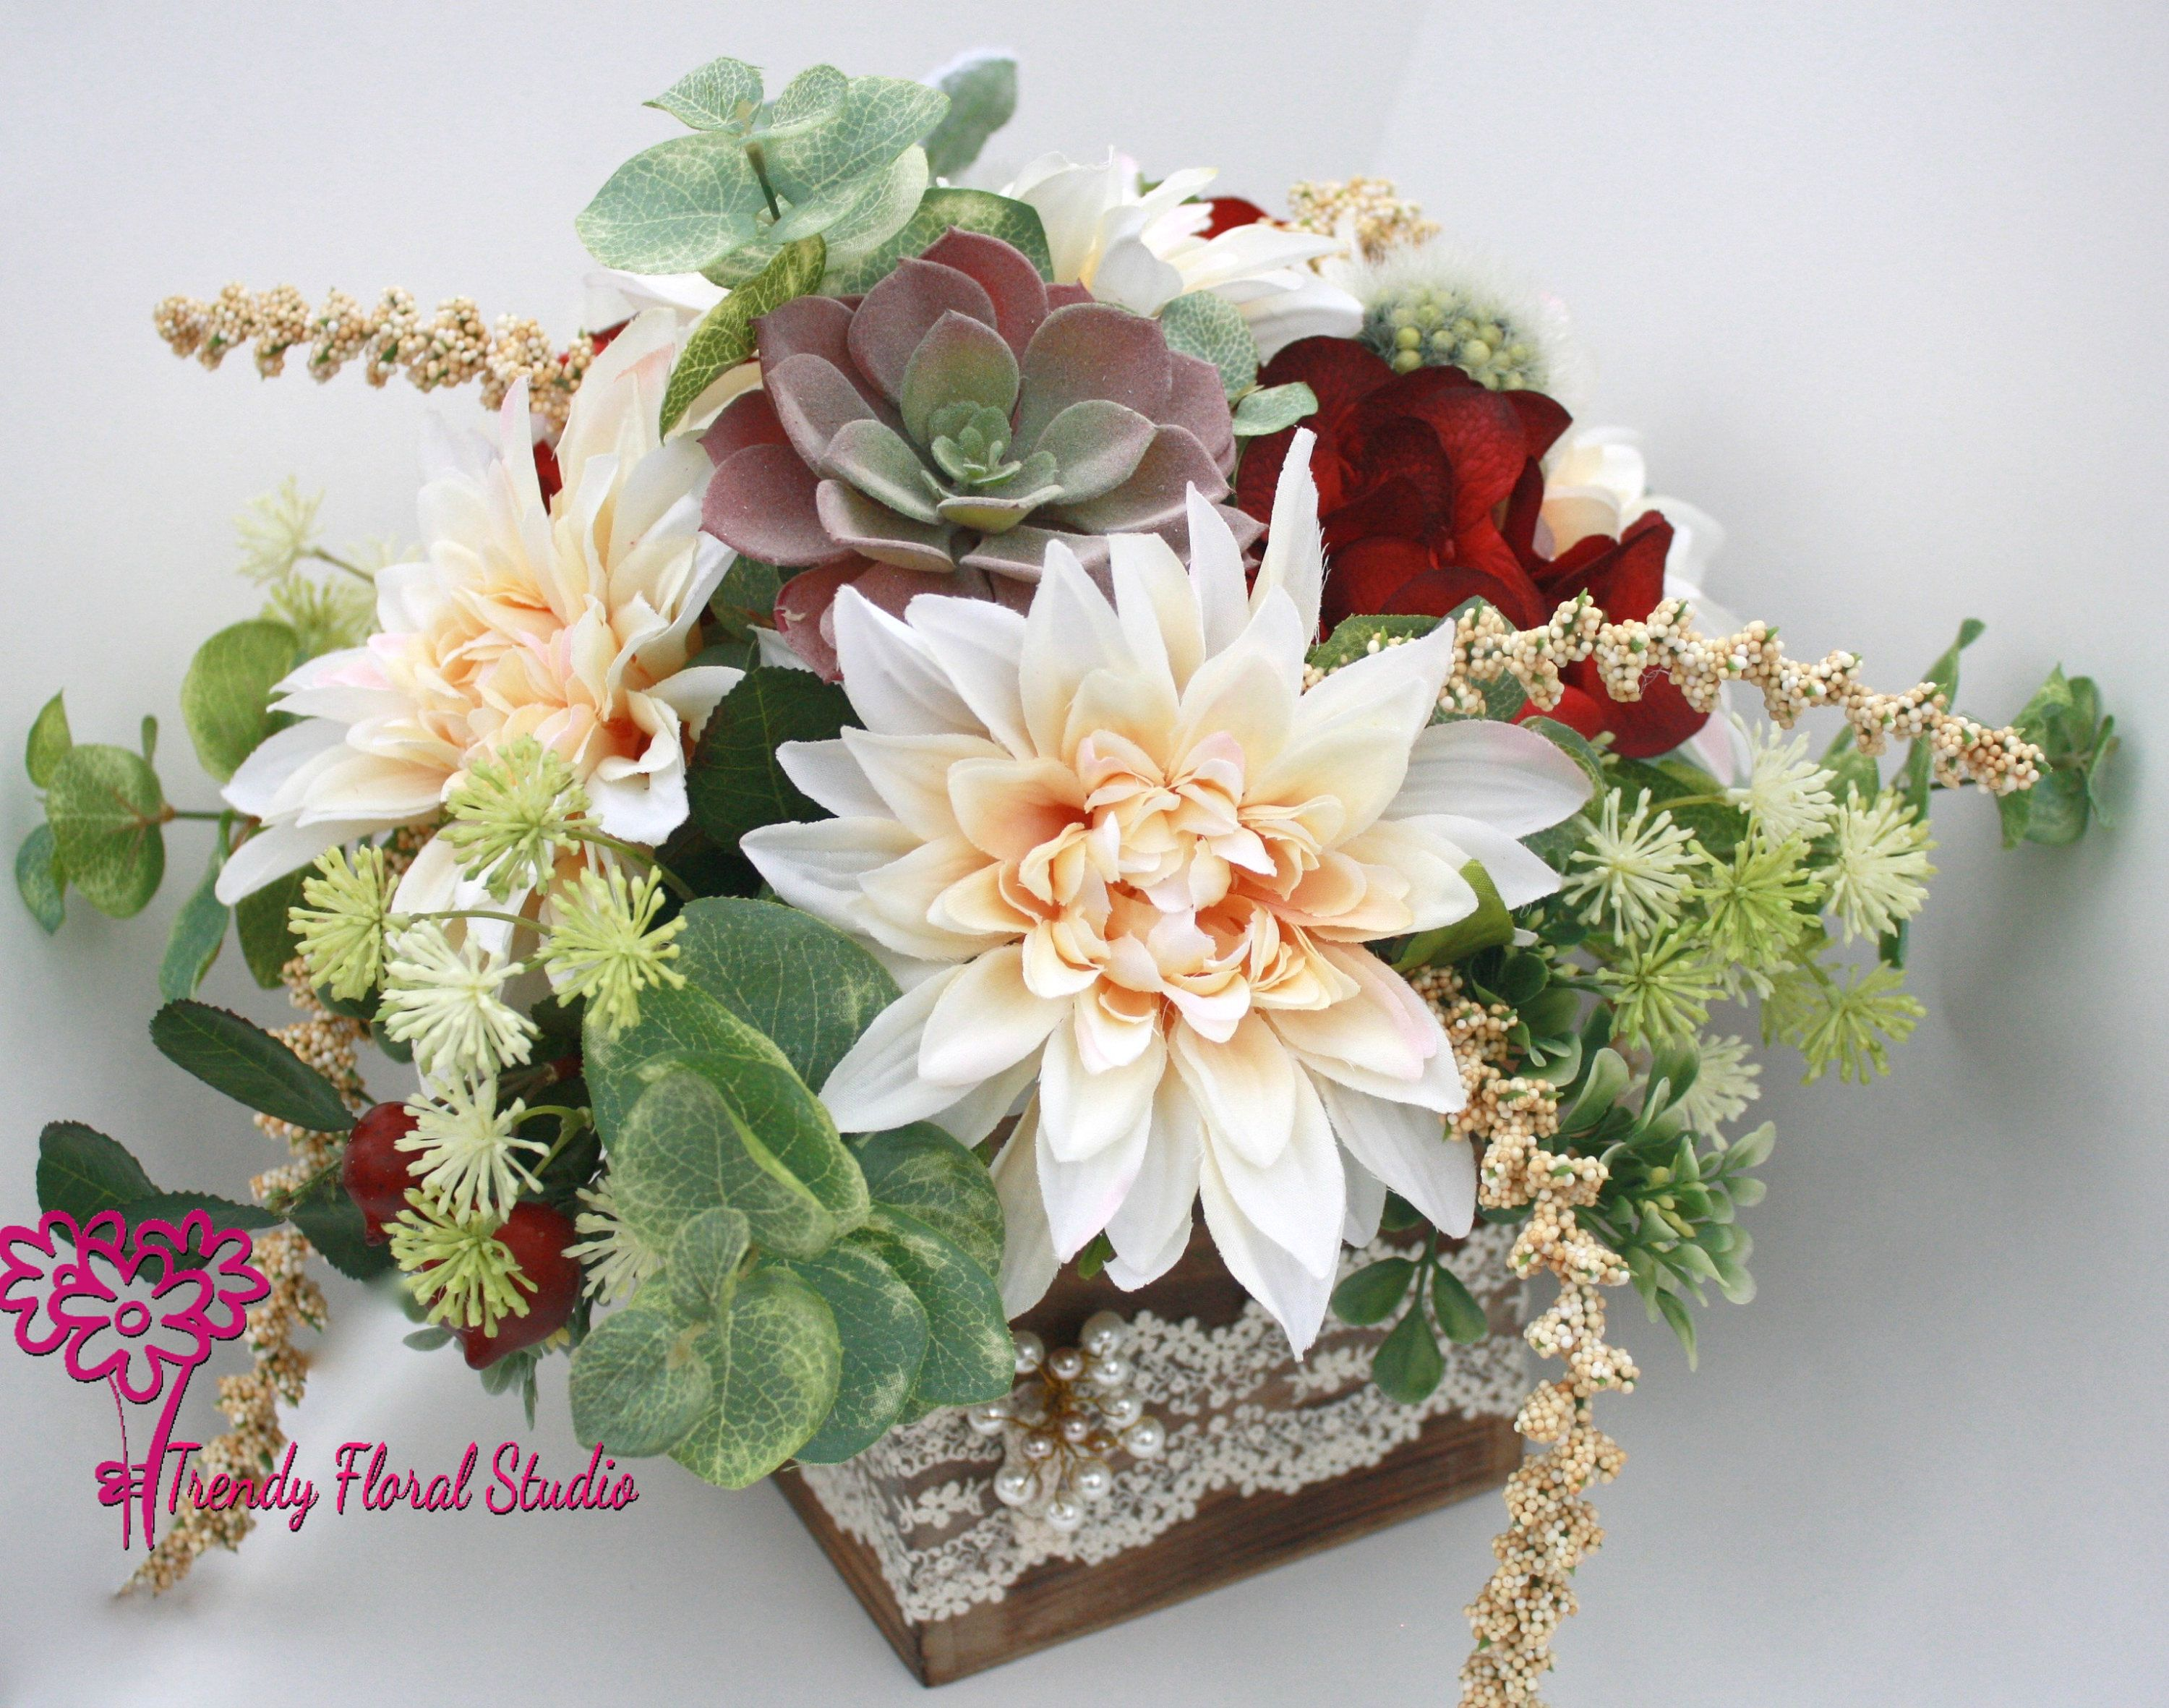 Rustic chic wooden box with lace wedding centerpiece blush burgundy rustic chic wooden box with lace wedding centerpiece blush burgundy silk flowers dahlia rose succulent table junglespirit Image collections